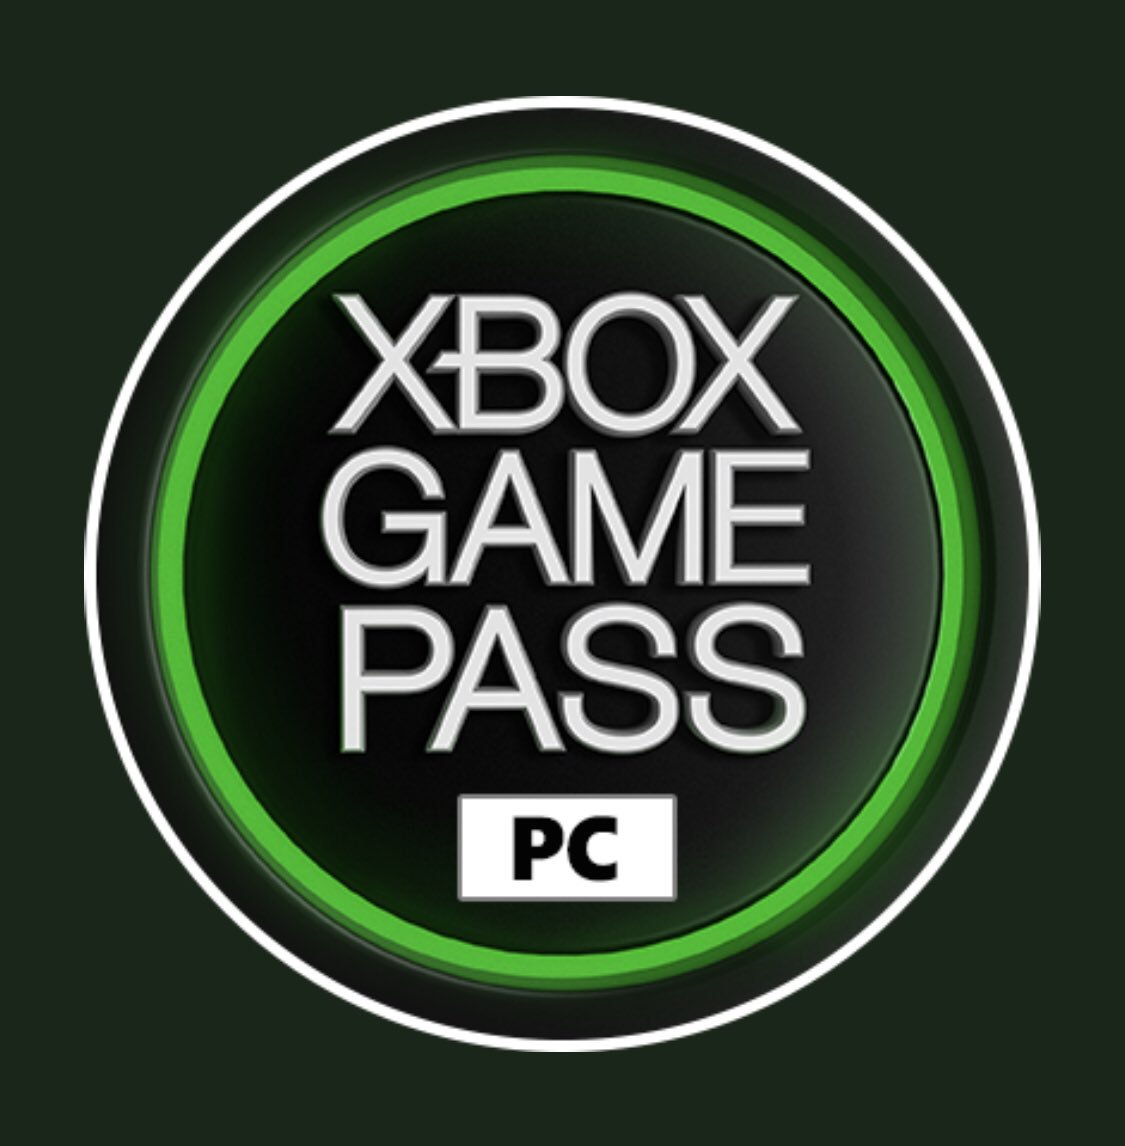 XBOX GAME PASS FOR PC 12 MONTHS CASHBACK FOR REVIEW